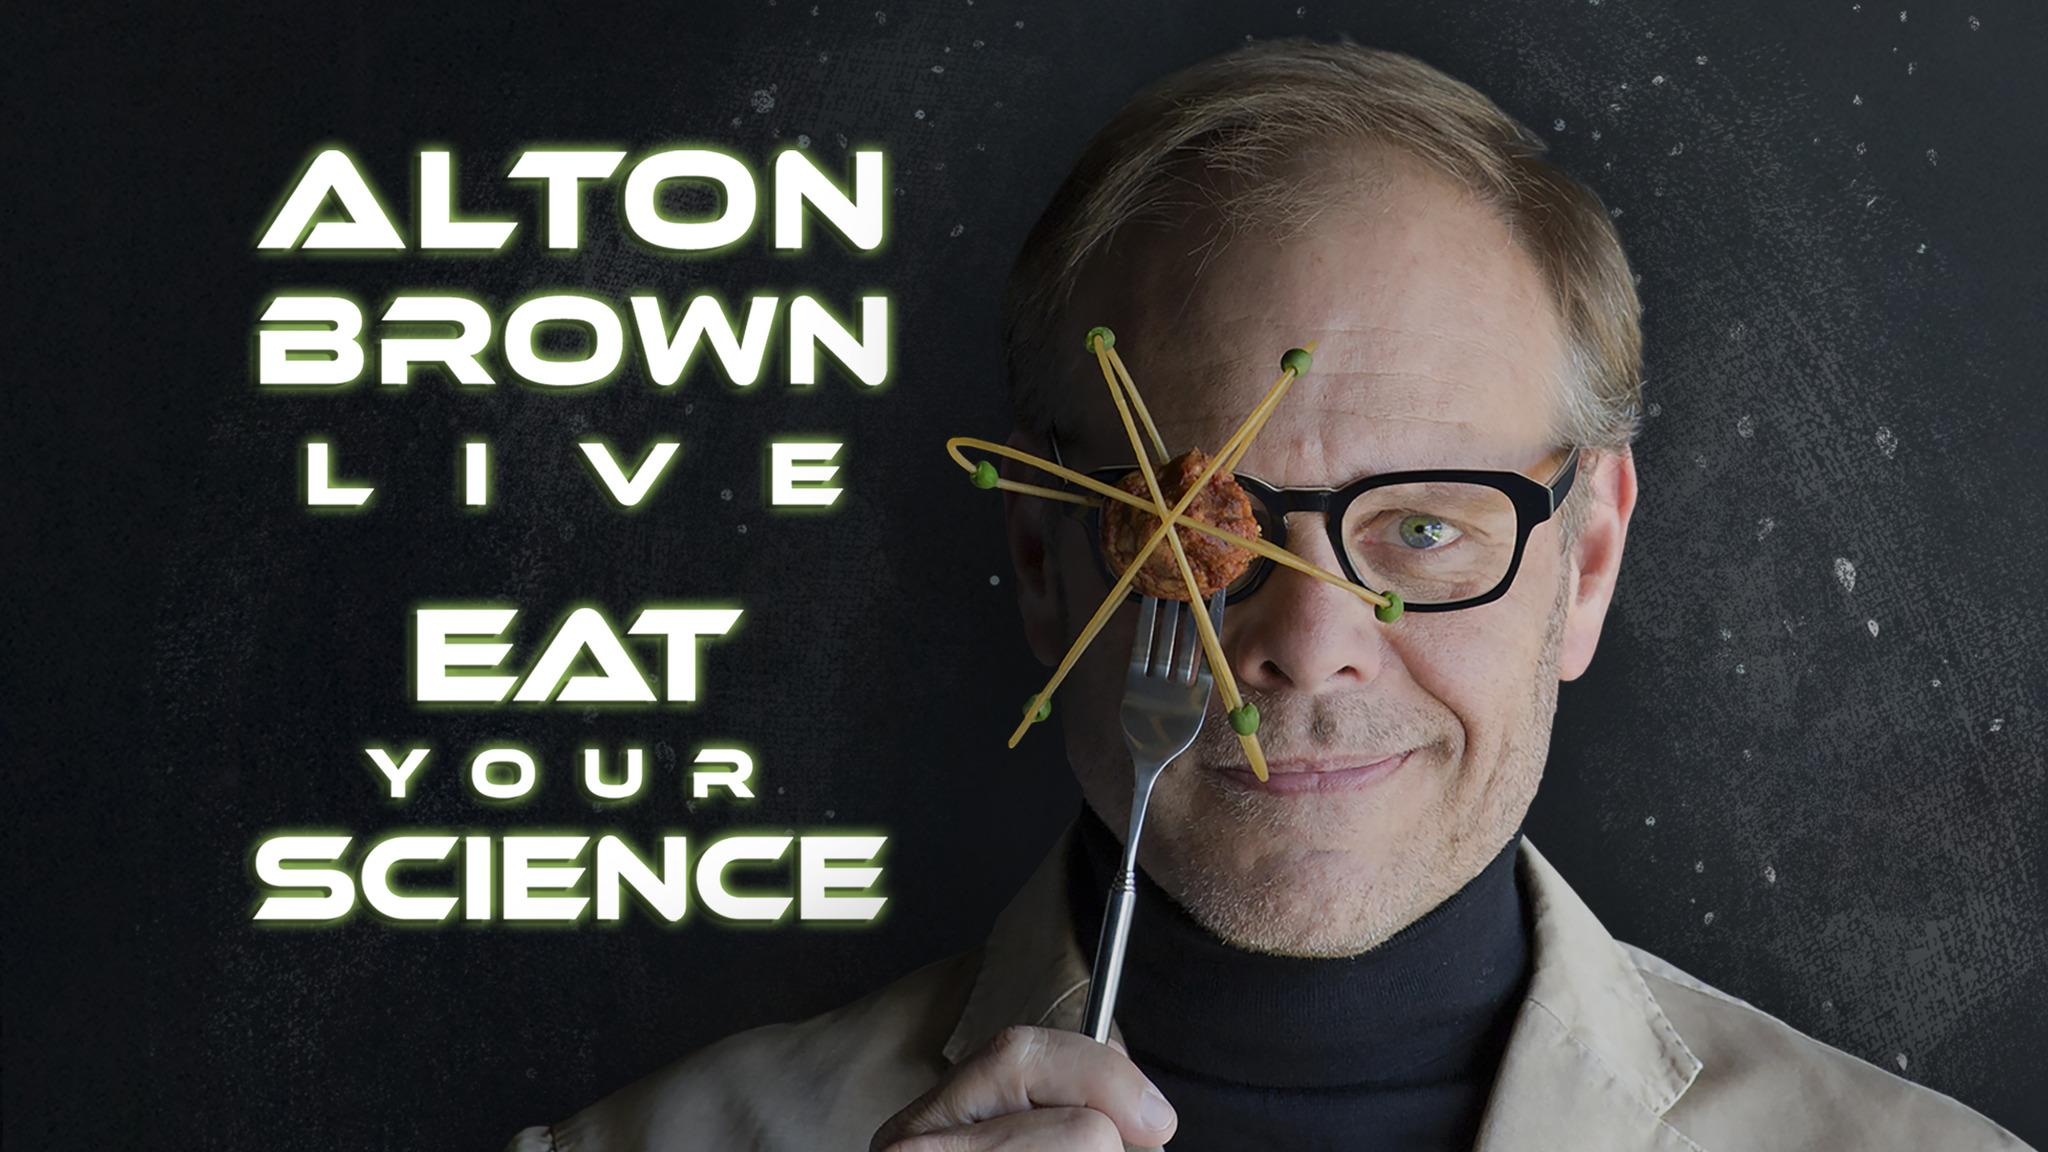 Alton Brown at Arlington Theatre - Santa Barbara, CA 93101